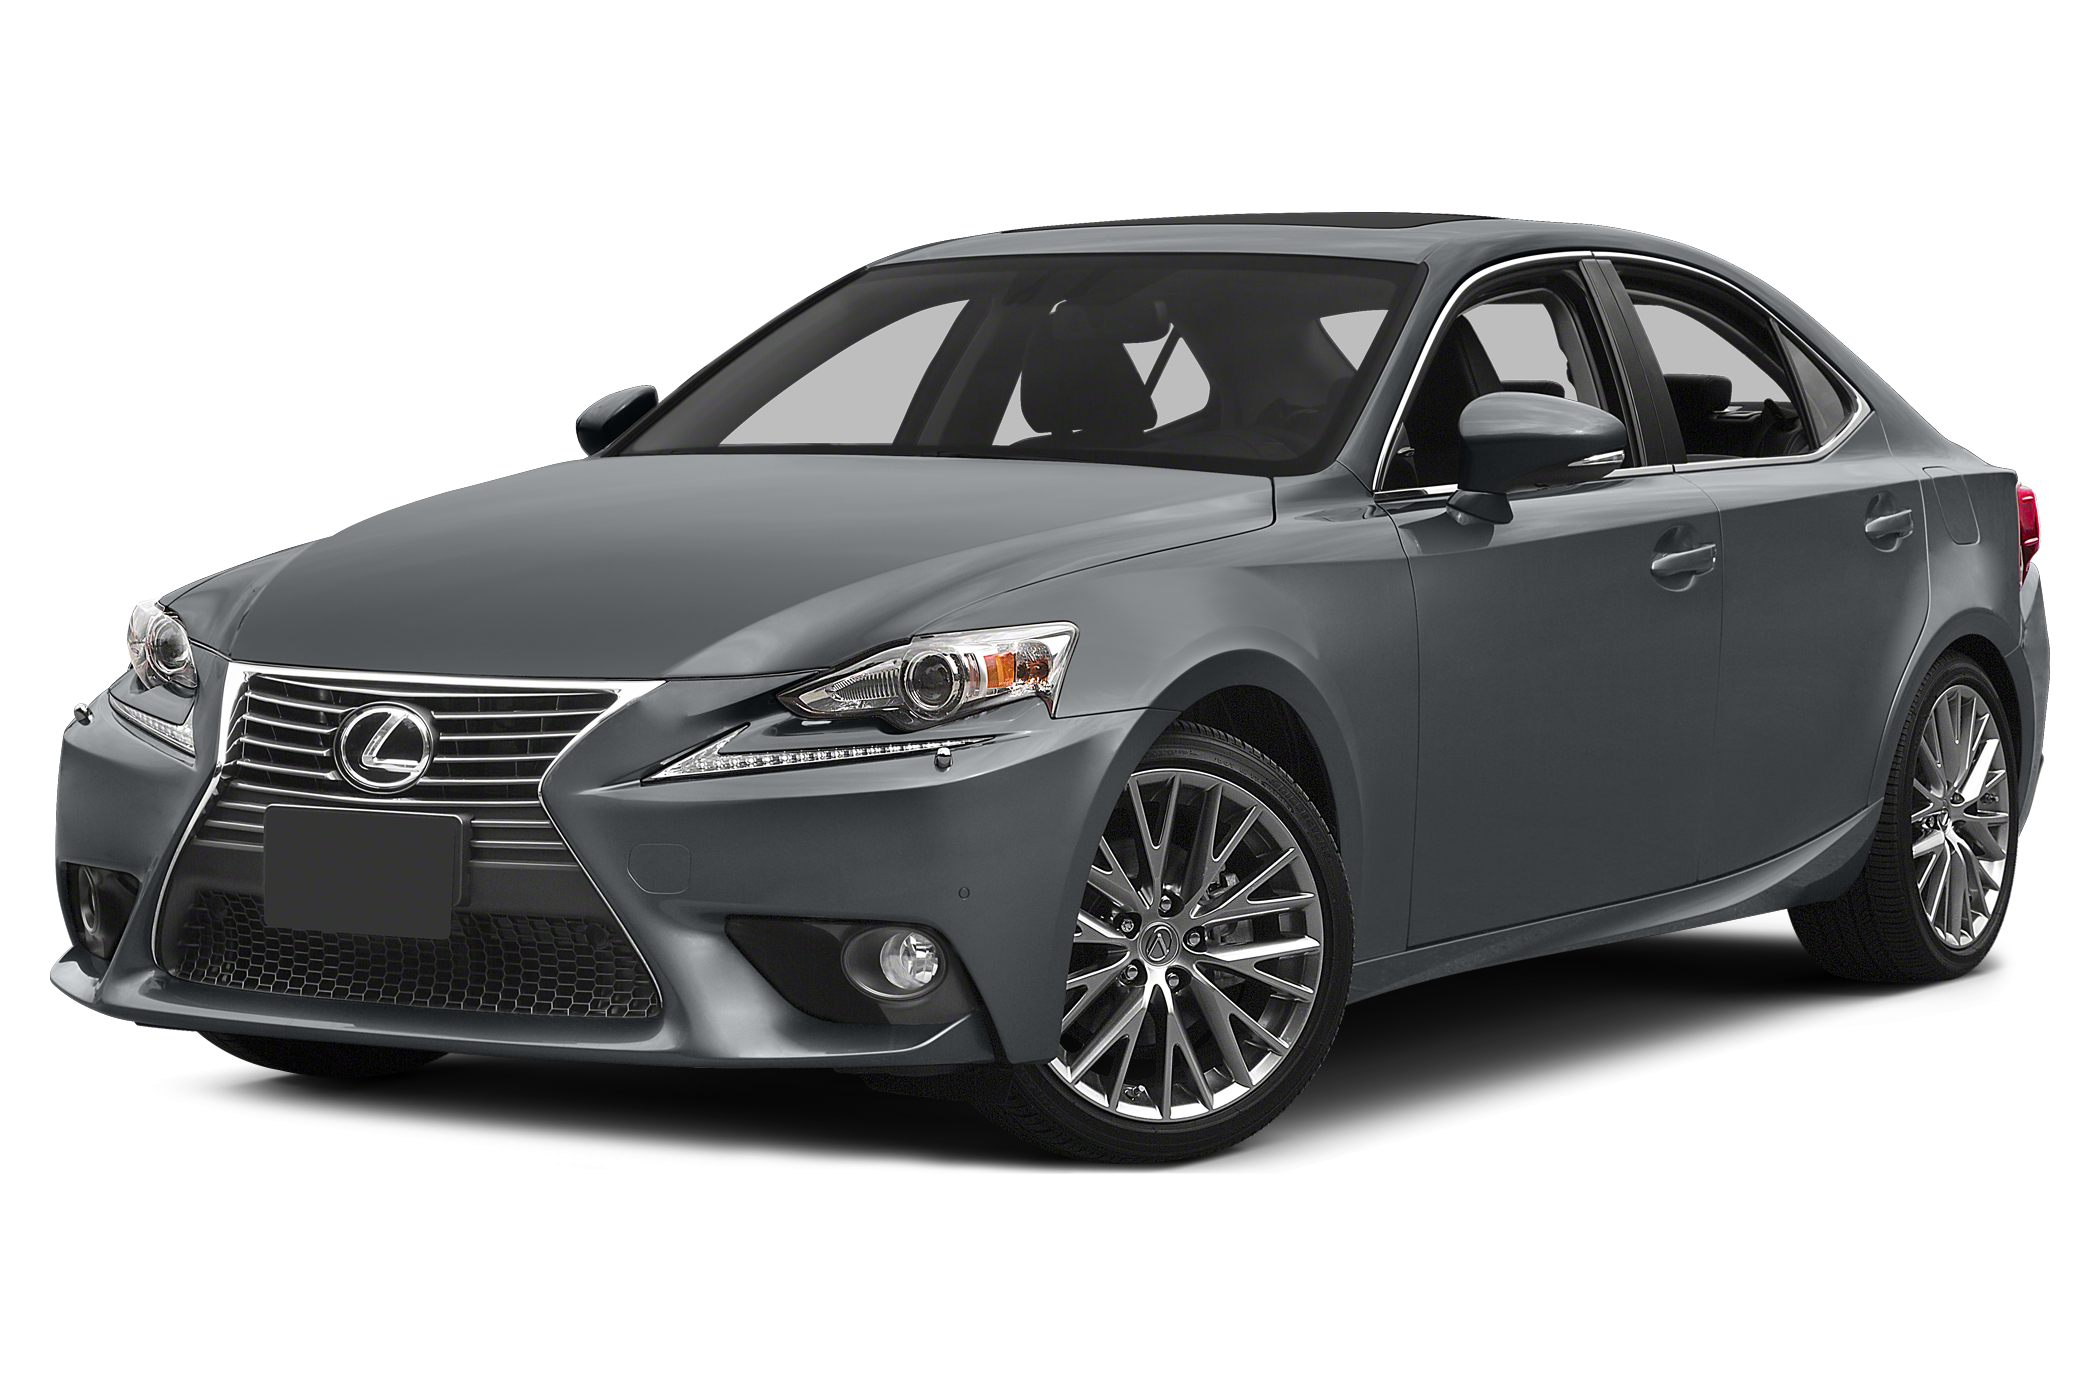 2014 Lexus IS 250 Base Sedan for sale in Wilmington for $31,990 with 5,665 miles.